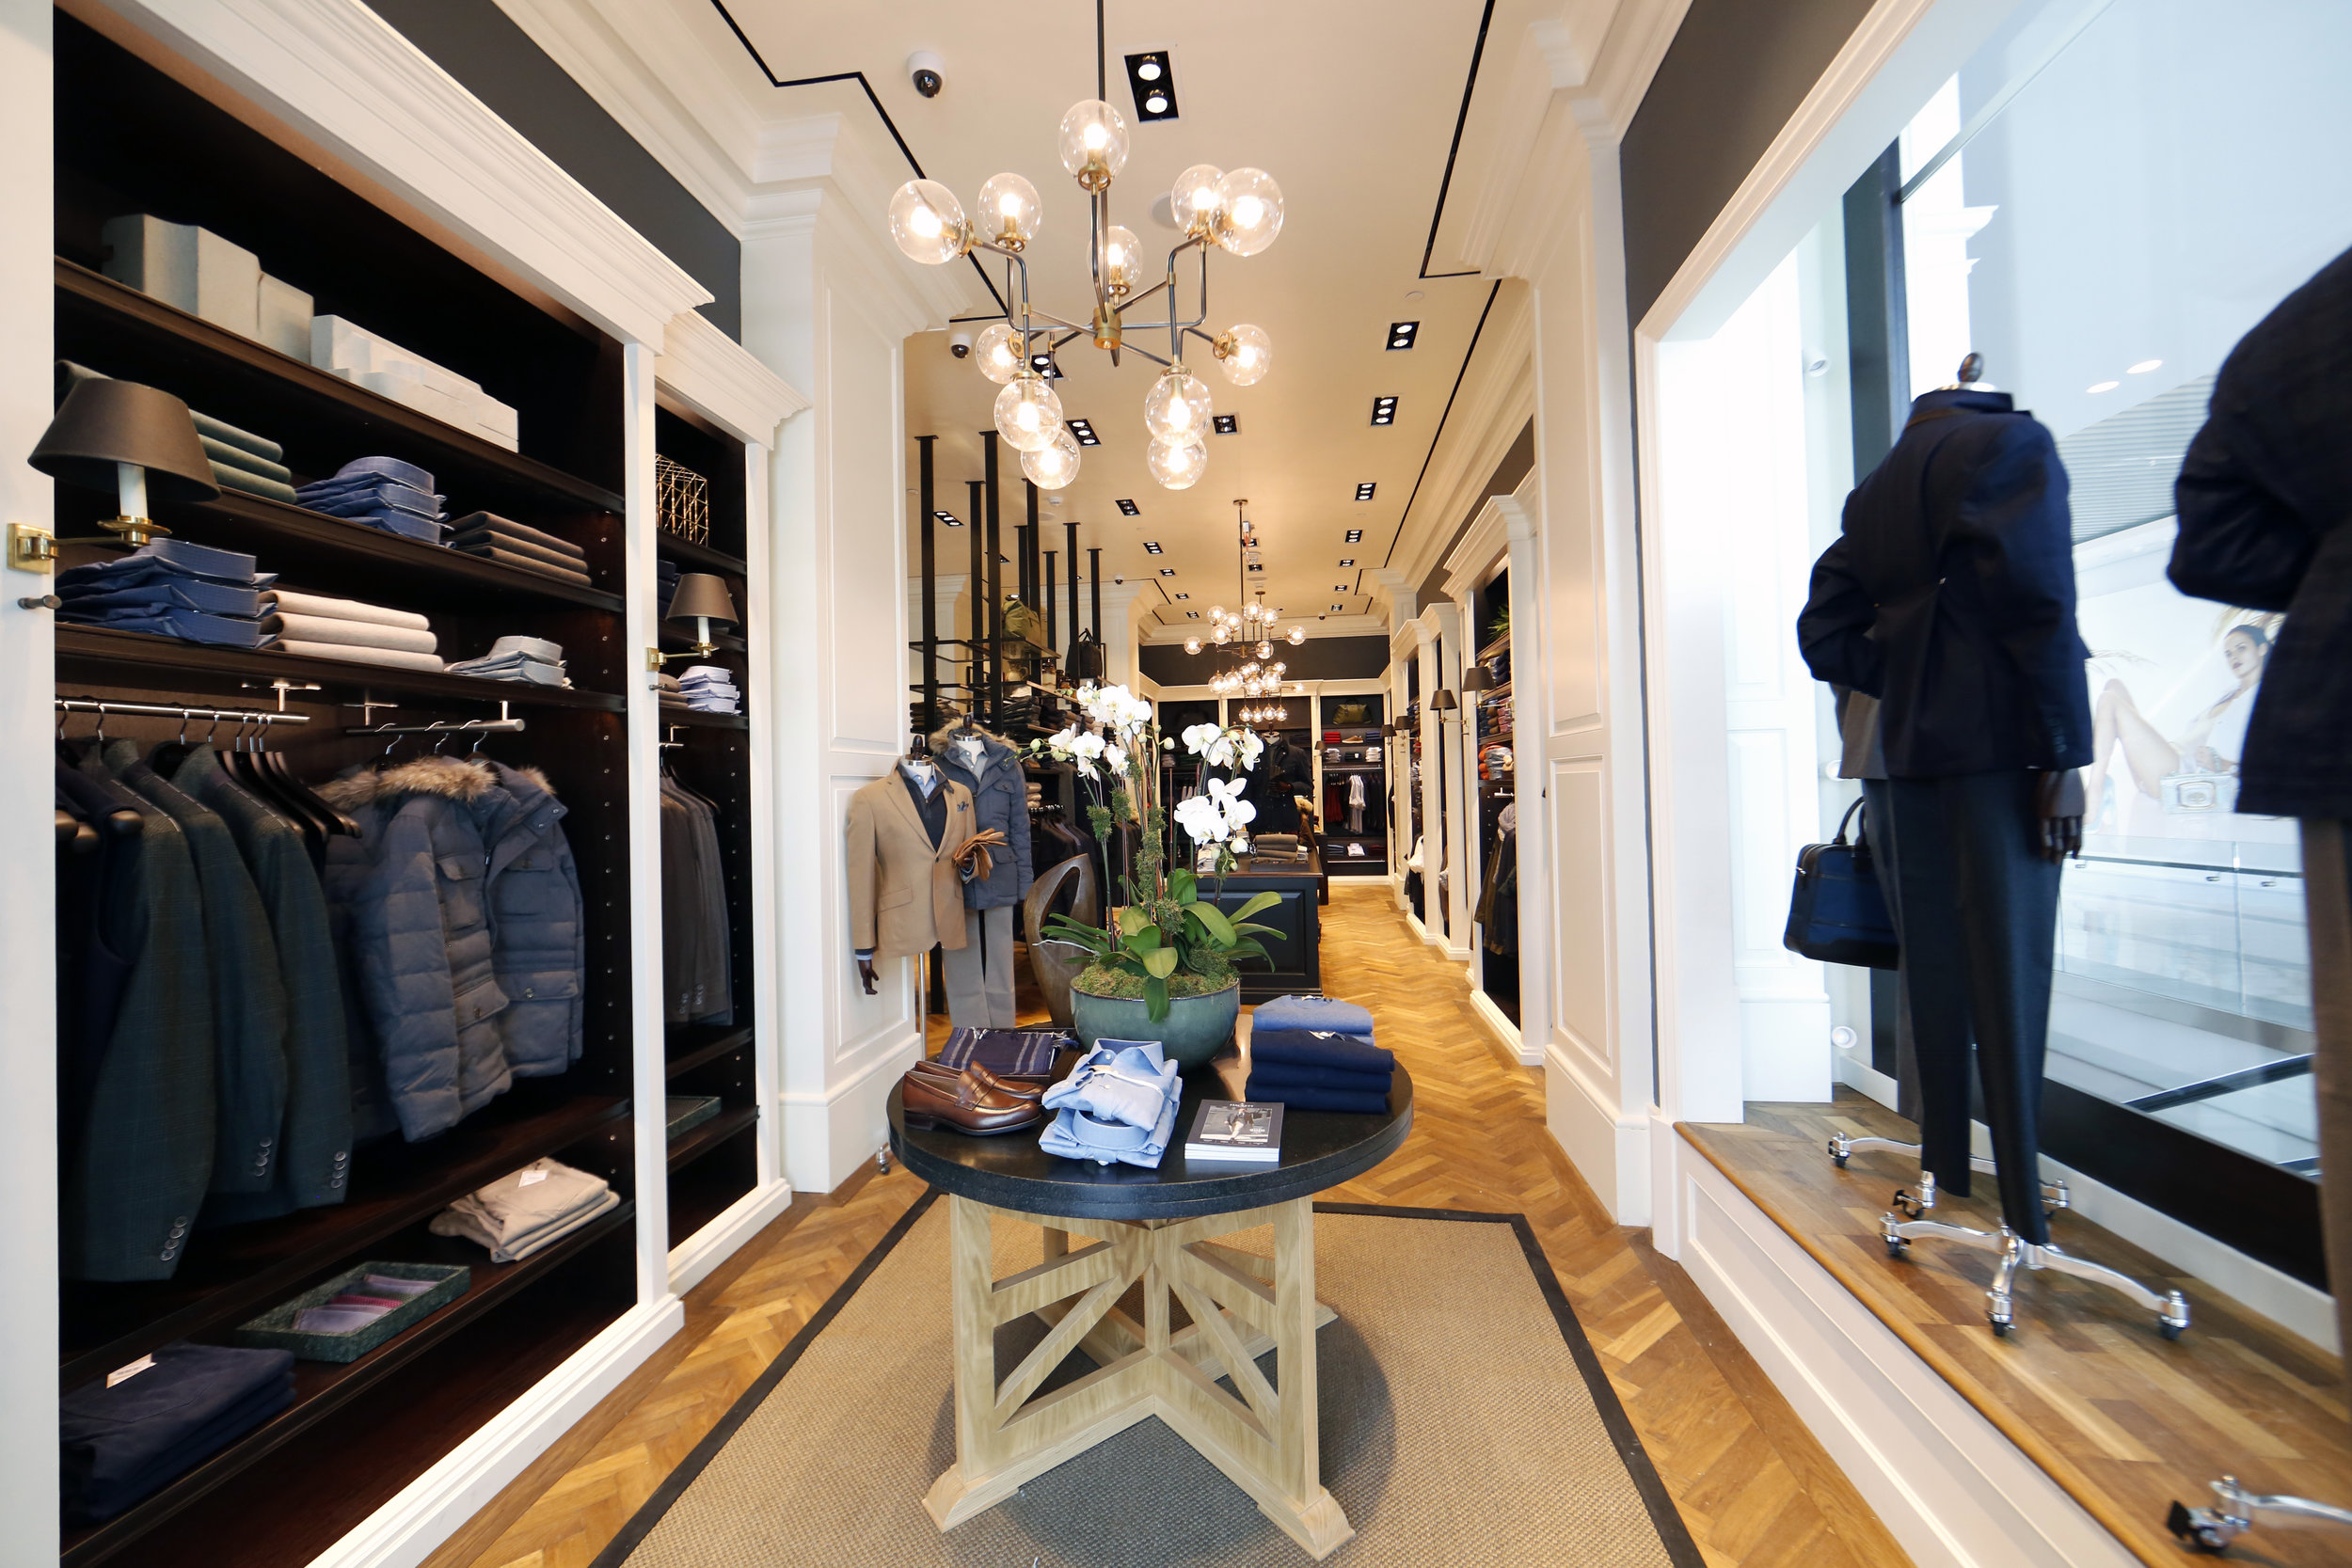 Orchids on a display table with collared shirts, a book, and brown leather loafers in Hackett London's Woodbury Common Premium outlet location. MEP by New York firm, 2L Engineering